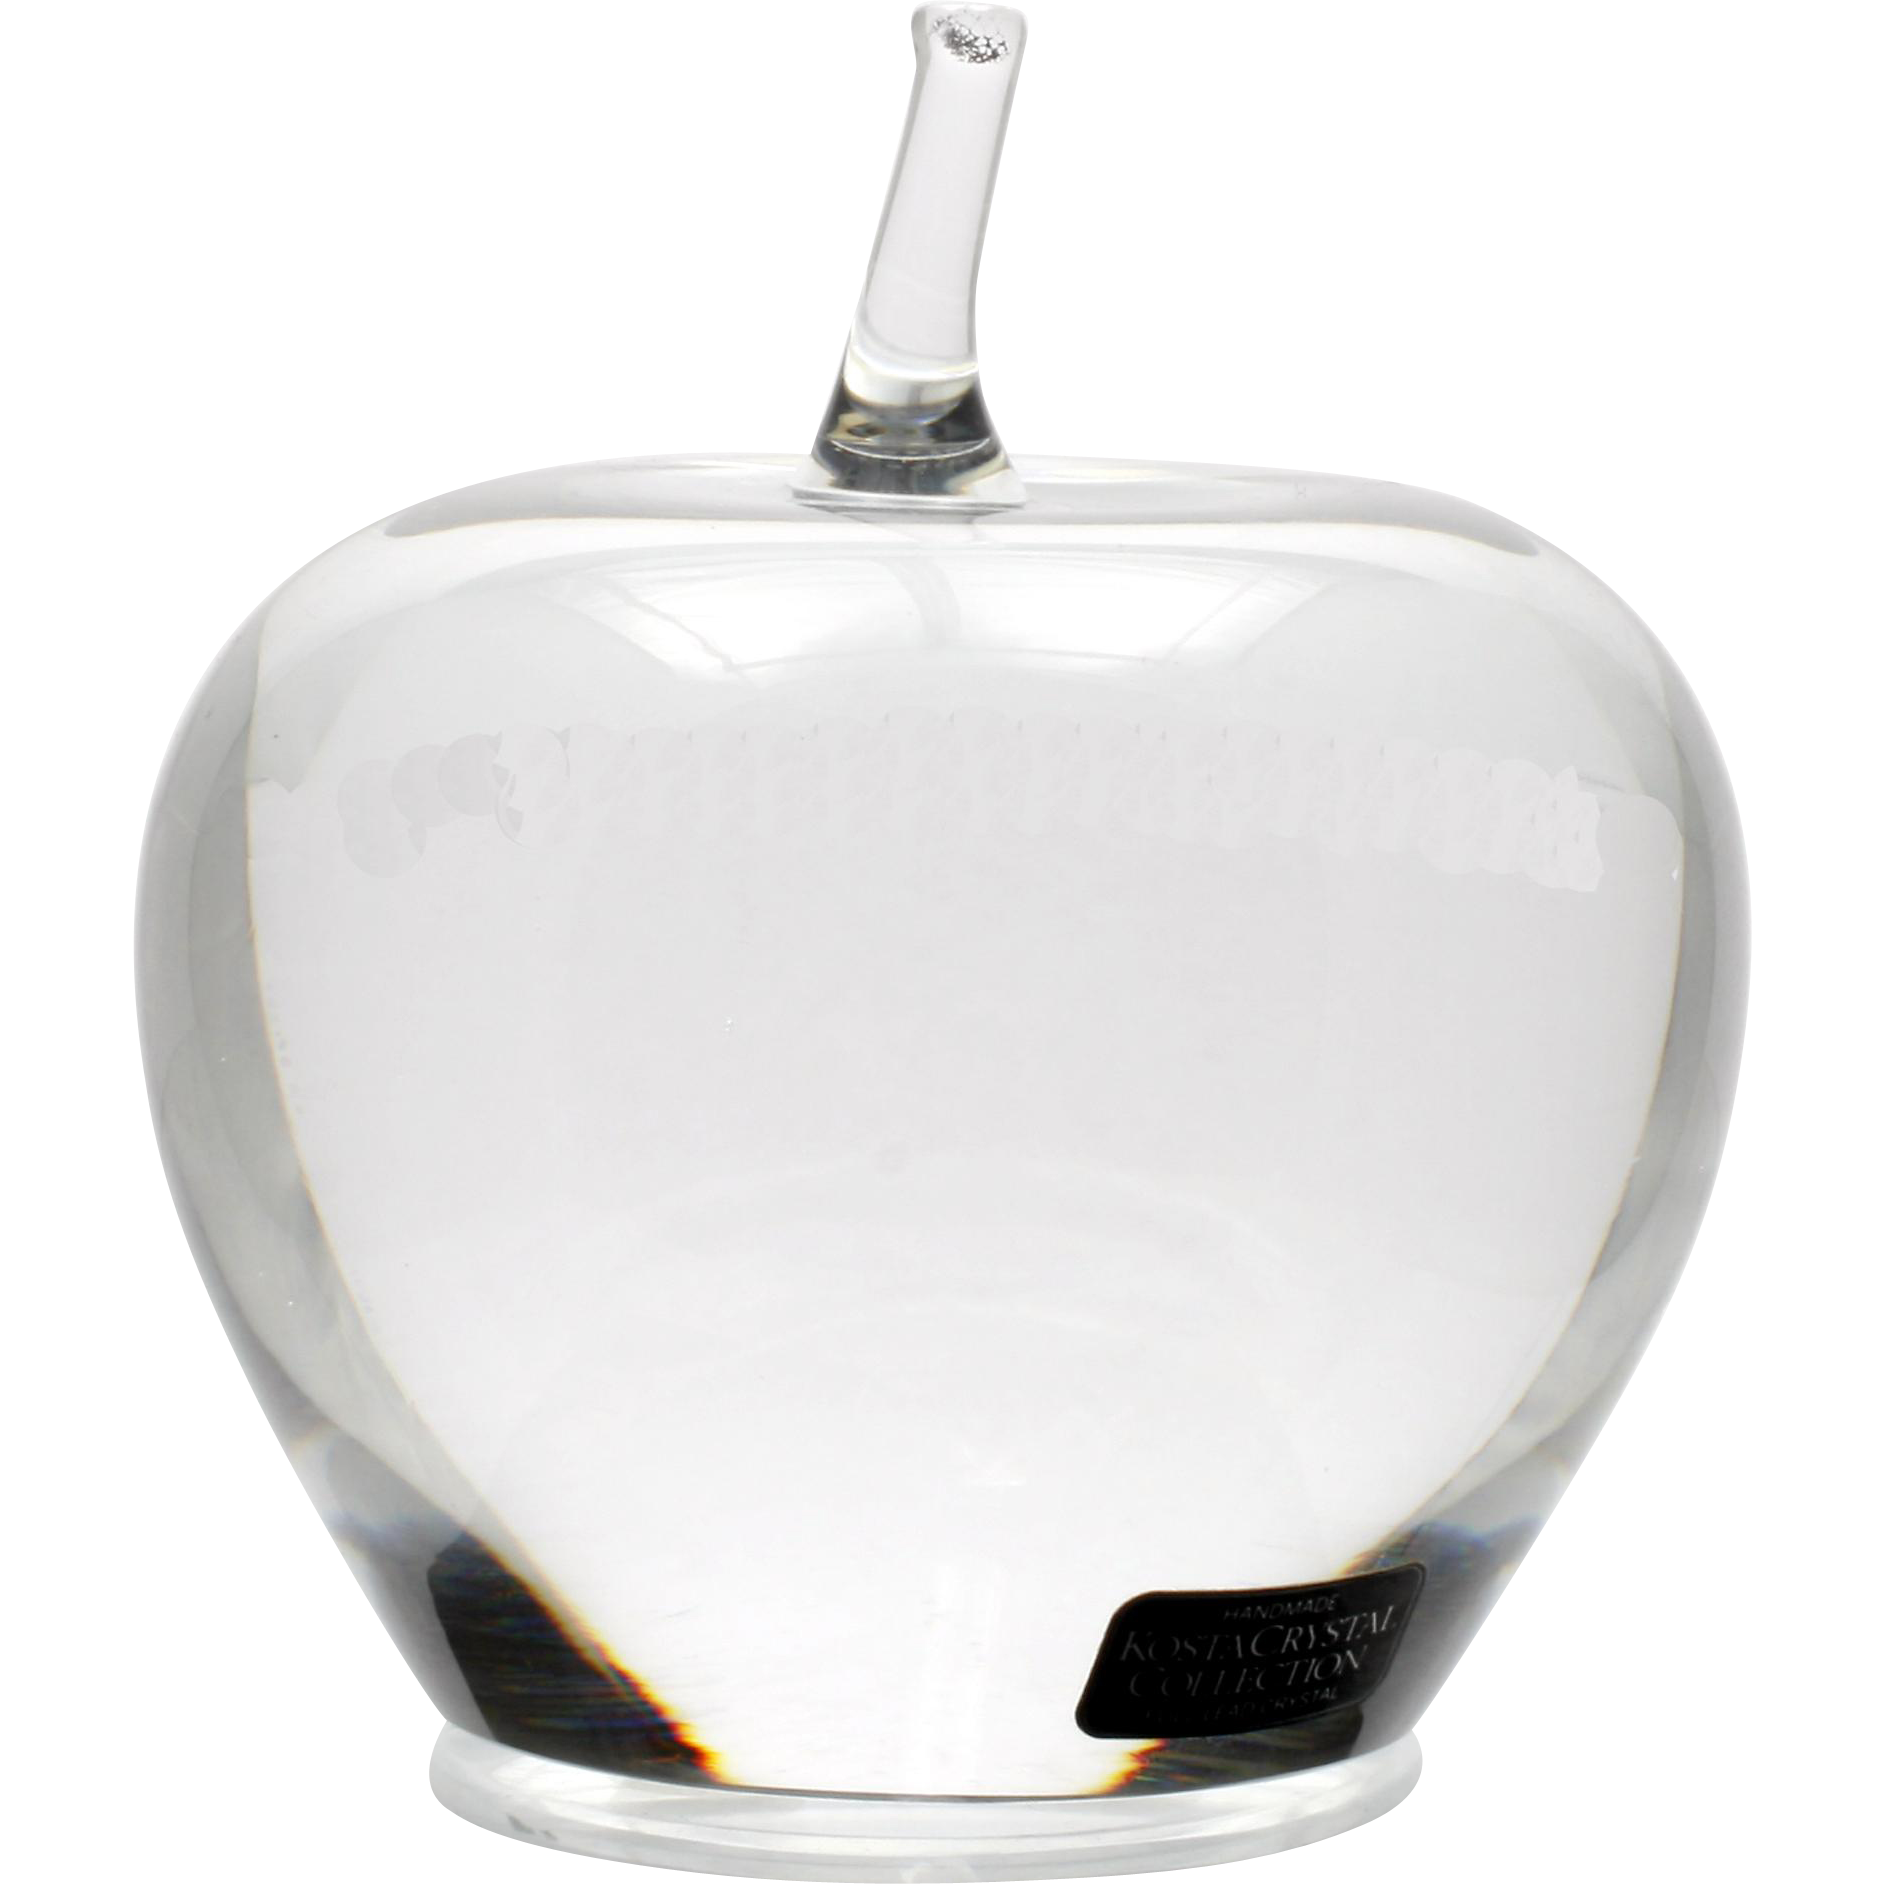 Kosta Boda Crystal Apple Paperweight Handmade Lead Crystal Art Glass with Label